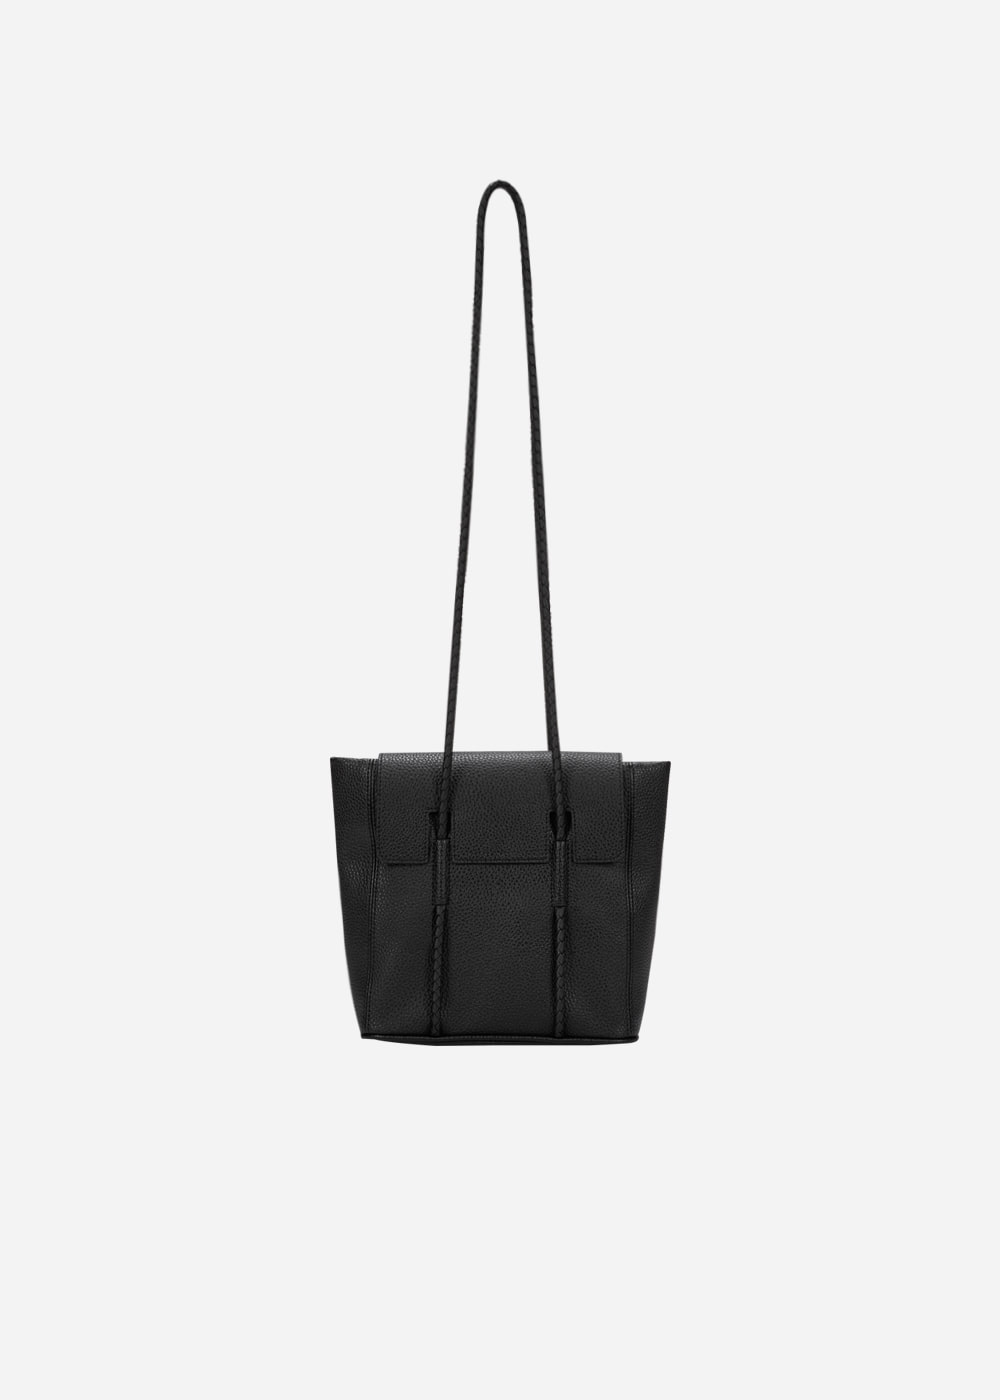 Norah Bag Black Micro